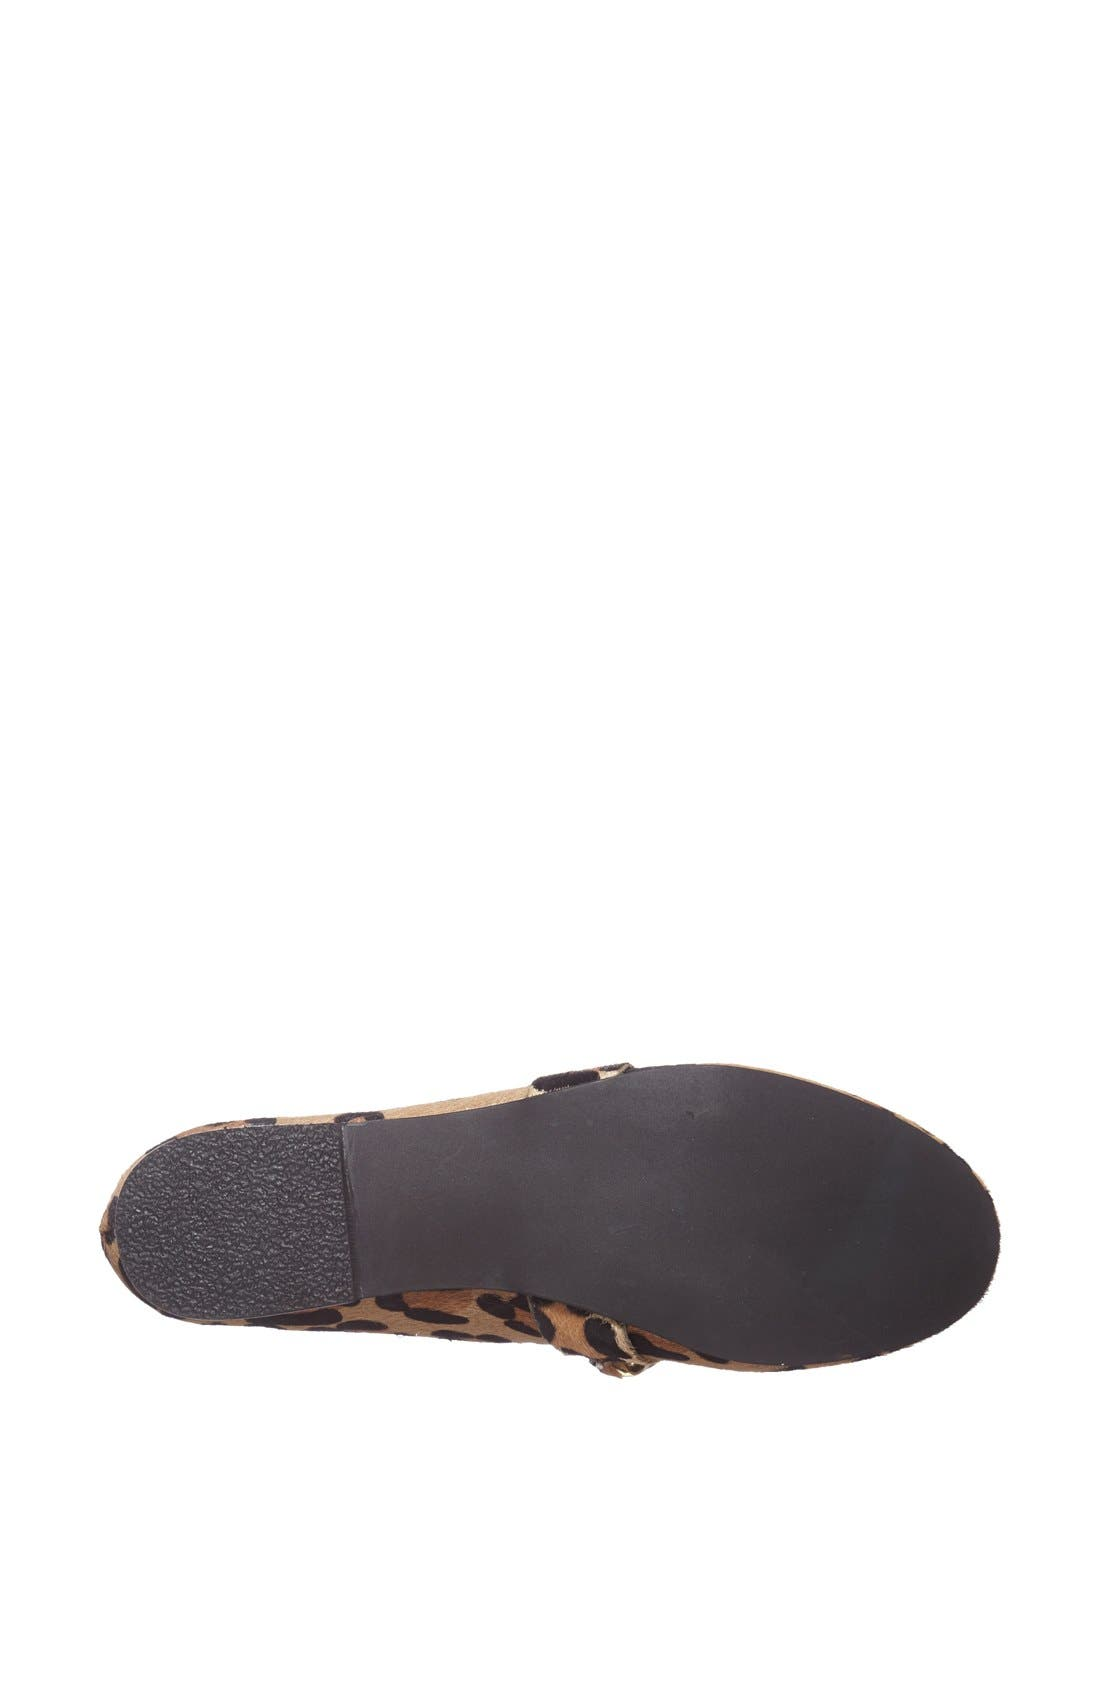 Alternate Image 4  - Steve Madden 'Chaingng' Calf Hair Flat